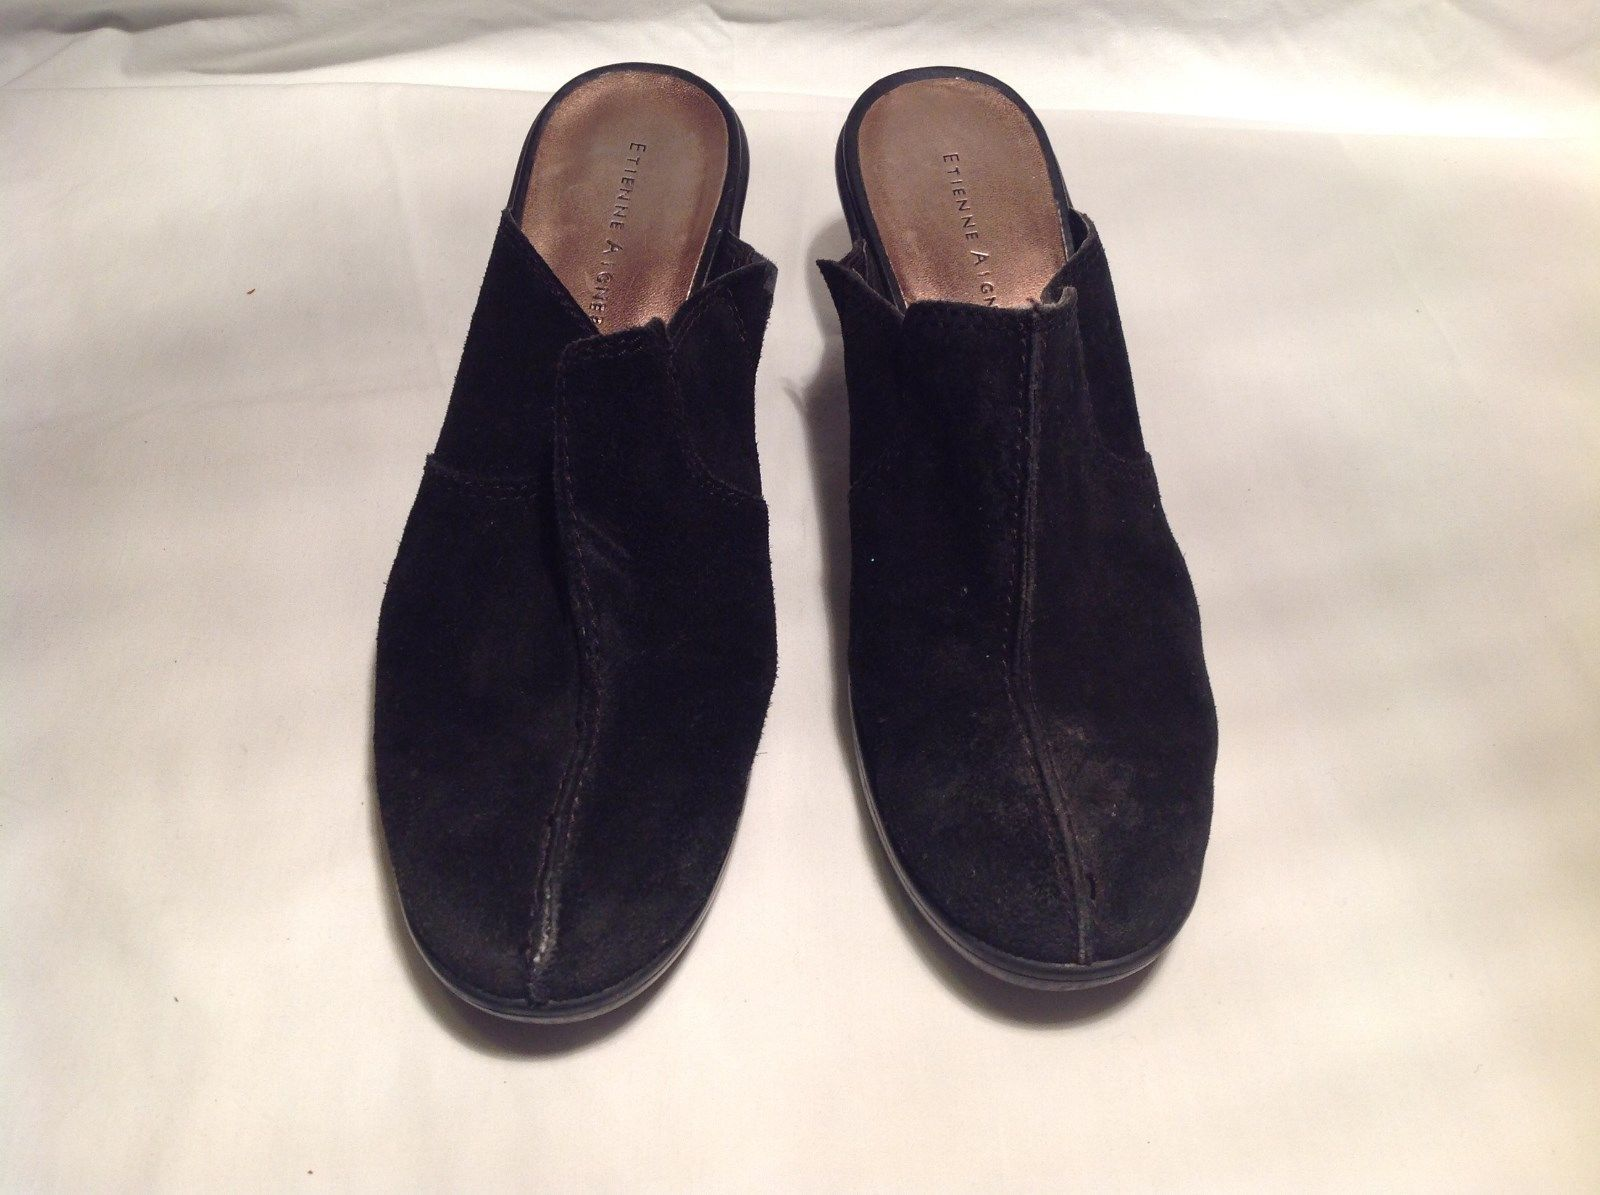 Black Wedge Suede Etienne Aigner Shoes Size 9